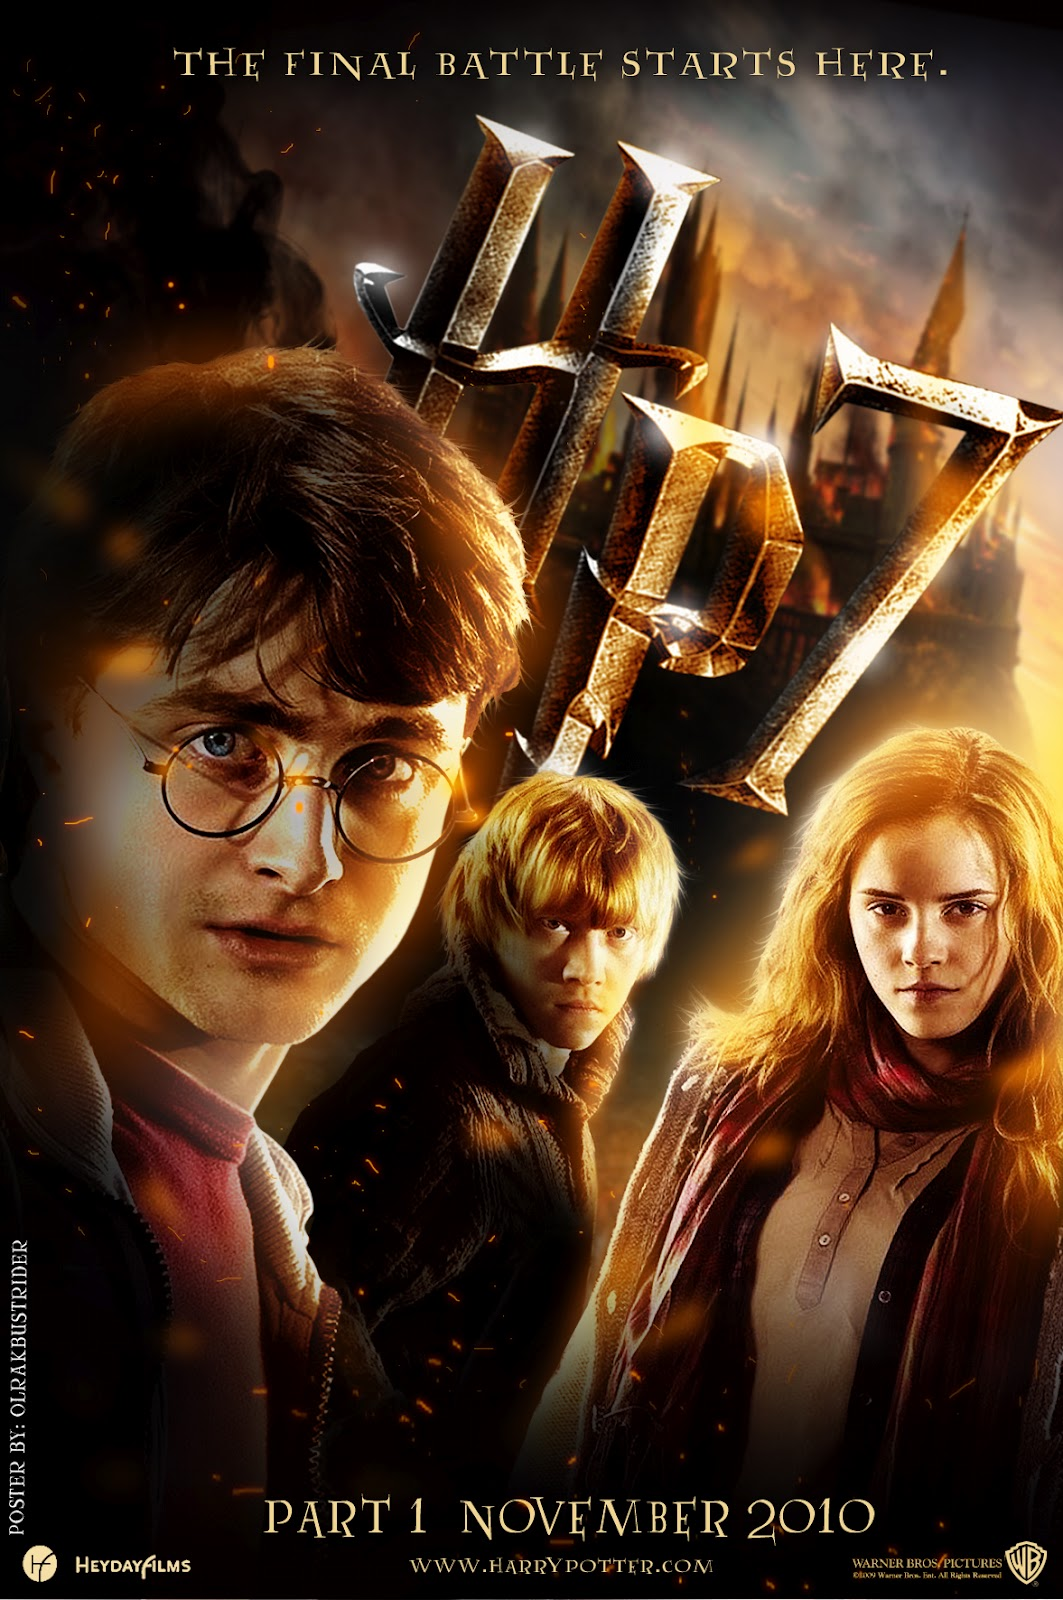 Dead Wallpaper With Quotes Gallery Funny Game Harry Potter Posters